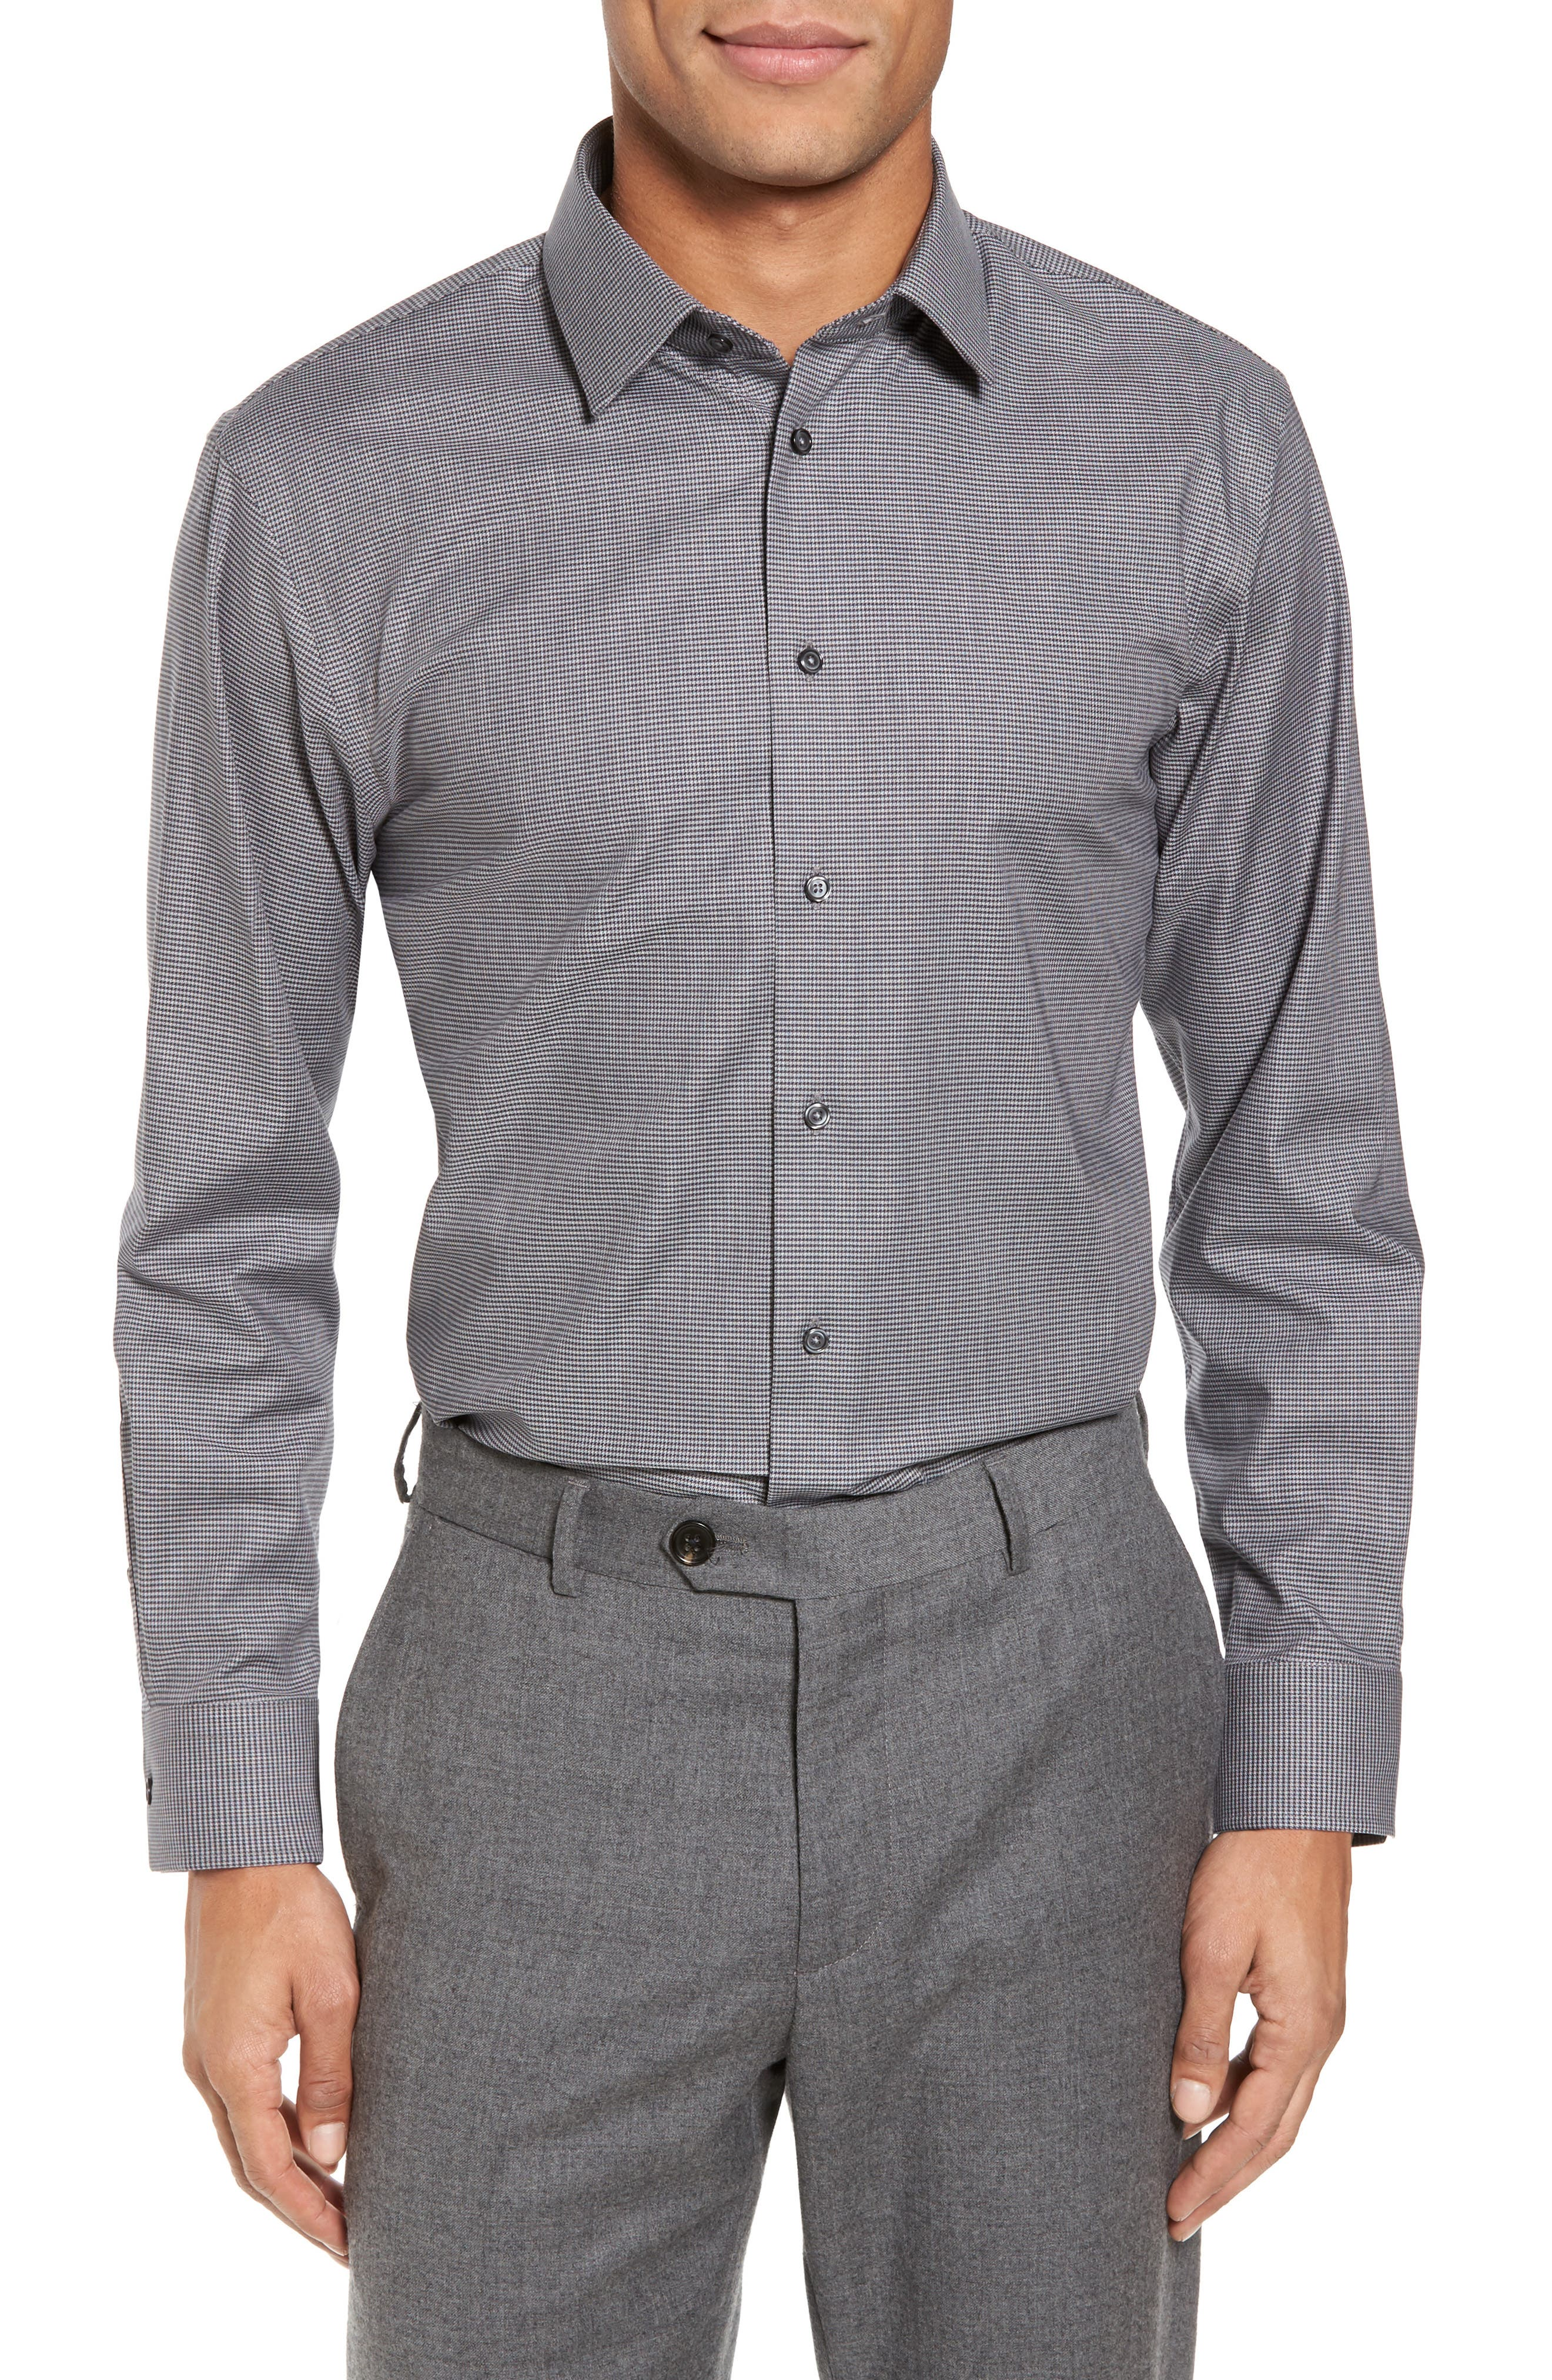 Trim Fit No-Iron Micro Houndstooth Stretch Dress Shirt,                             Alternate thumbnail 2, color,                             Grey Onyx